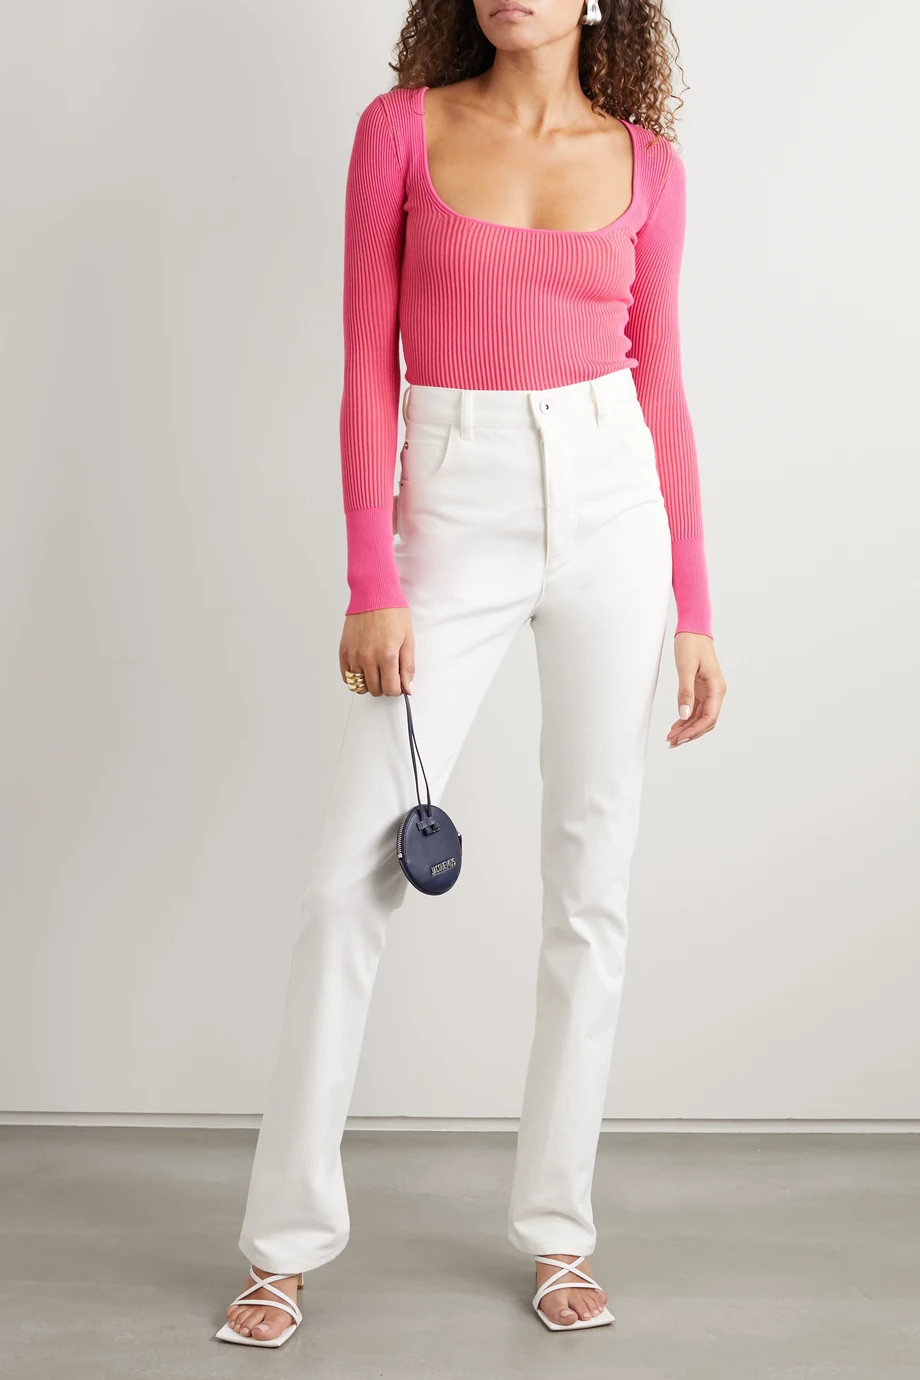 """Who would we be if we didn't supply you with ample options for <a href=""""https://www.net-a-porter.com/en-us/shop/product/jacquemus/loiza-ribbed-knit-top/1215922"""" rel=""""nofollow noopener"""" target=""""_blank"""" data-ylk=""""slk:under-$130 Jacquemus"""" class=""""link rapid-noclick-resp"""">under-$130 Jacquemus</a>? <br> <br> <strong>Jacquemus</strong> Ribbed Knit Sweater, $, available at <a href=""""https://go.skimresources.com/?id=30283X879131&url=https%3A%2F%2Fwww.net-a-porter.com%2Fen-us%2Fshop%2Fproduct%2Fjacquemus%2Fribbed-knit-sweater%2F1215931"""" rel=""""nofollow noopener"""" target=""""_blank"""" data-ylk=""""slk:Net-A-Porter"""" class=""""link rapid-noclick-resp"""">Net-A-Porter</a>"""